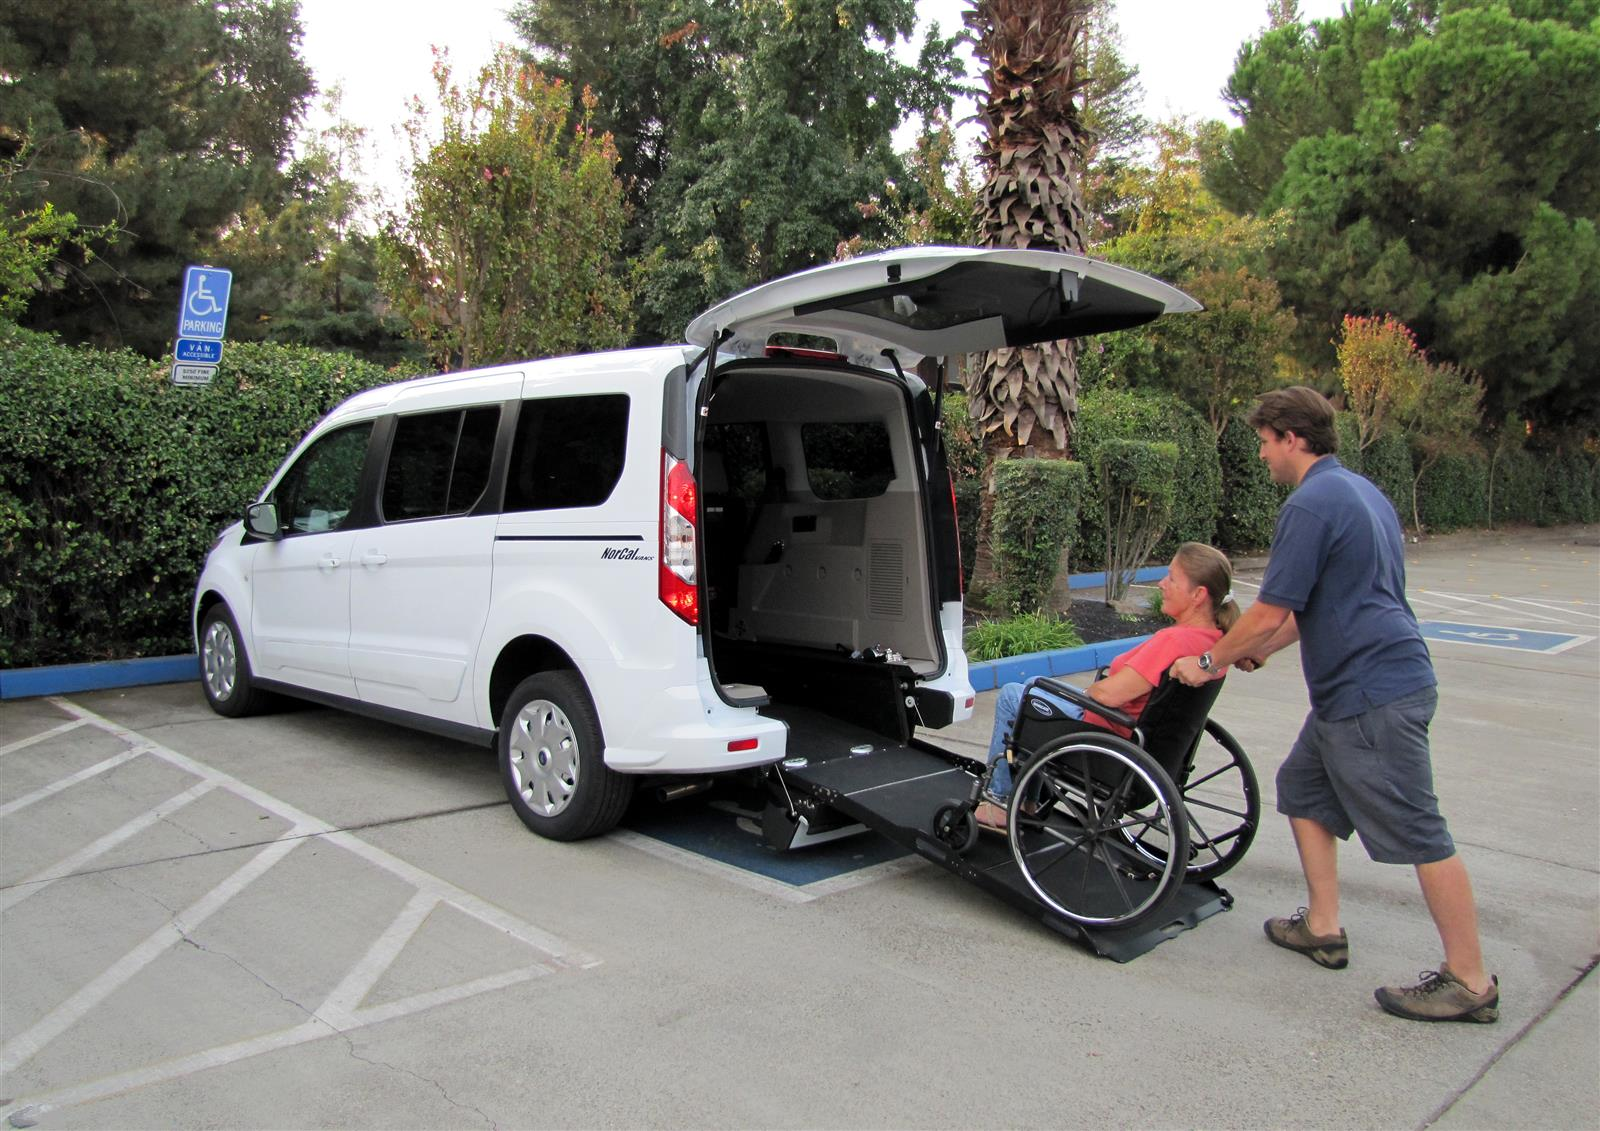 2018 Ford Transit Connect 4x2, Wheelchair van with rear entry #T375066 - Livermore Auto Group - photo 1